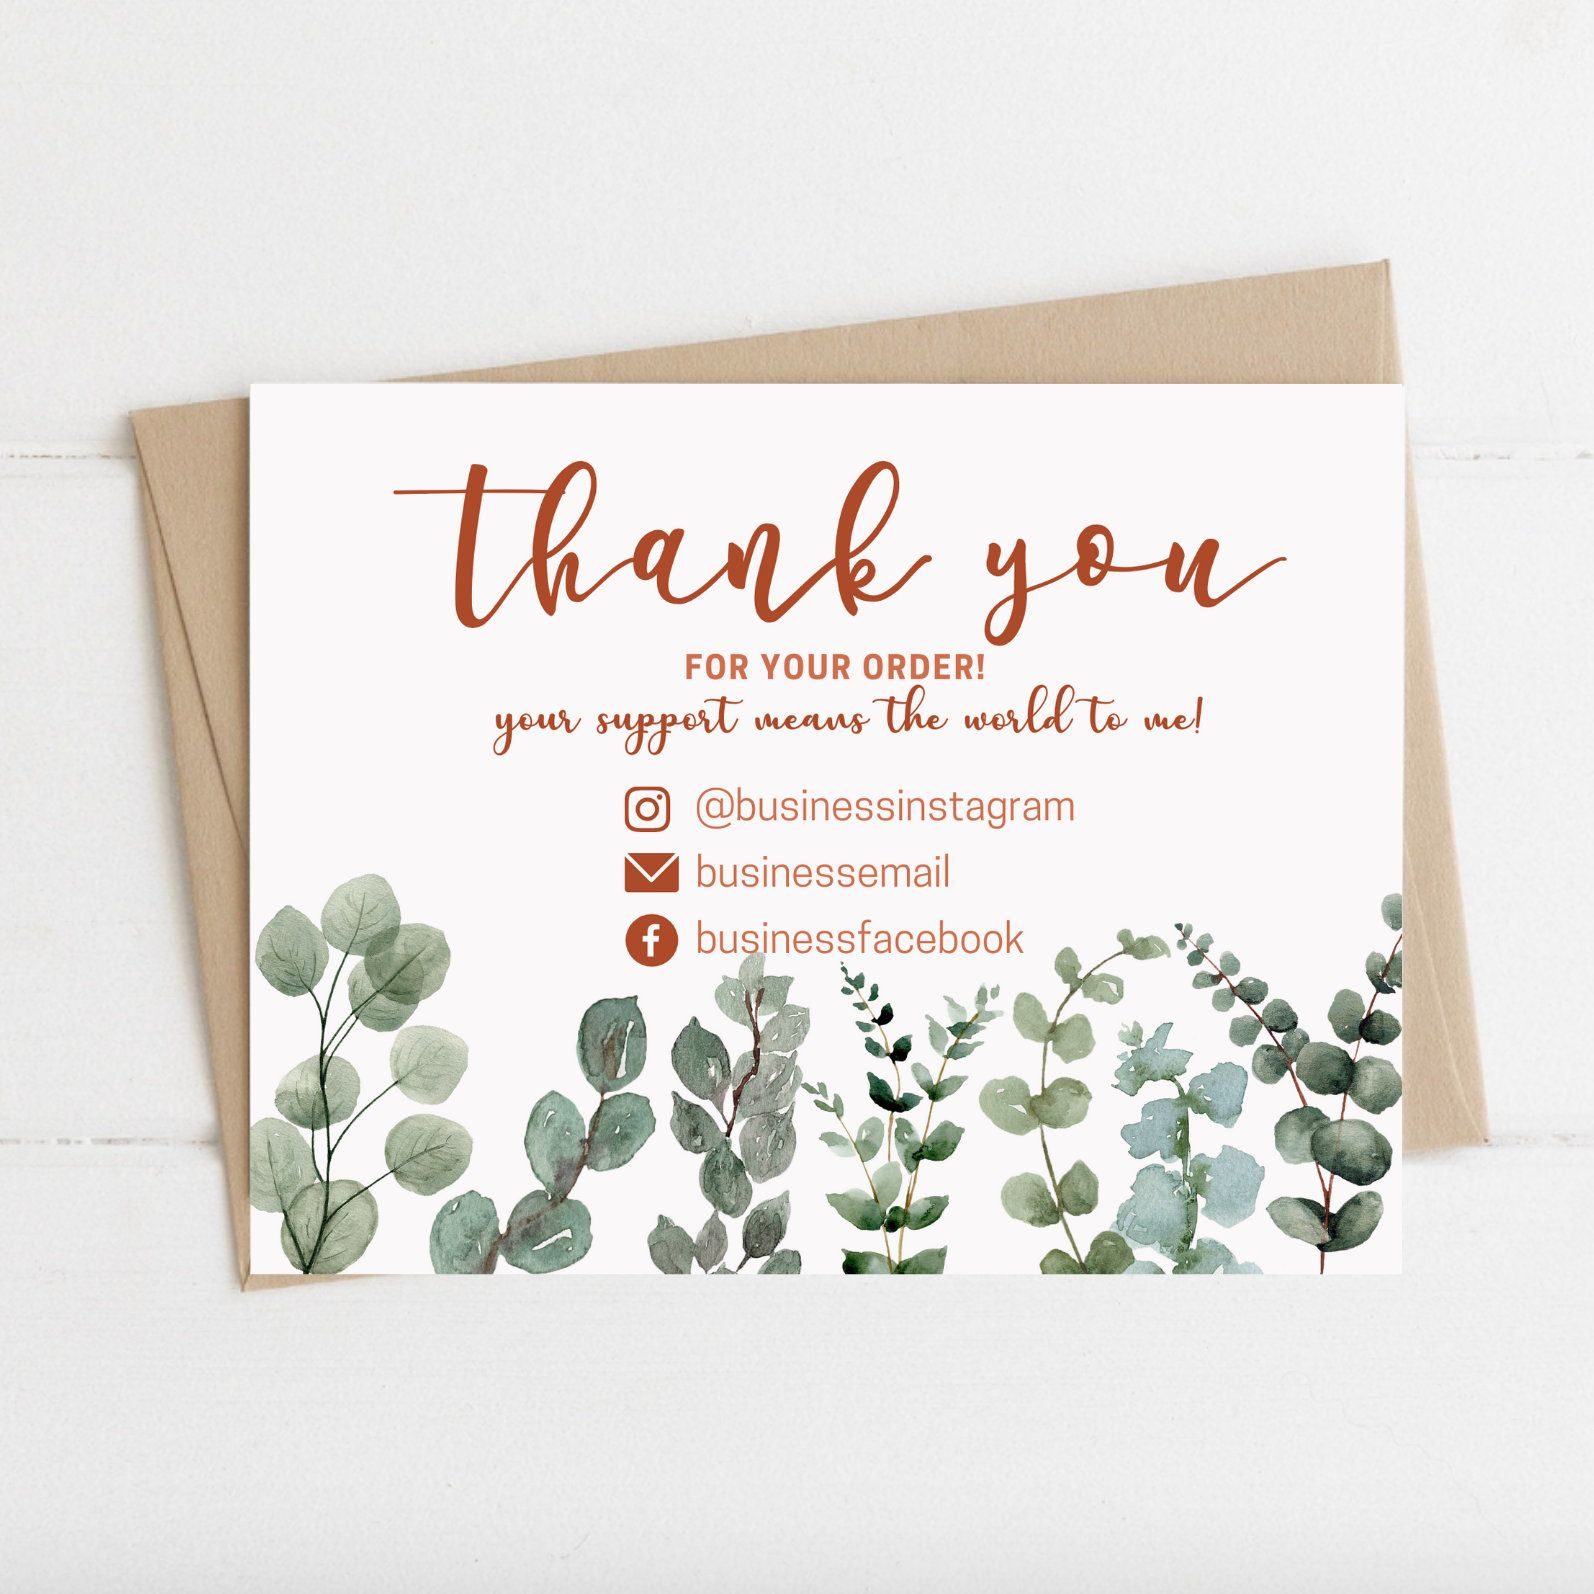 Instant Download Thank You Card Editable And Printable Thank You Card Thank You Card For Business Greenery Thank You Business Cards In 2021 Printable Thank You Cards Thank You Cards Business